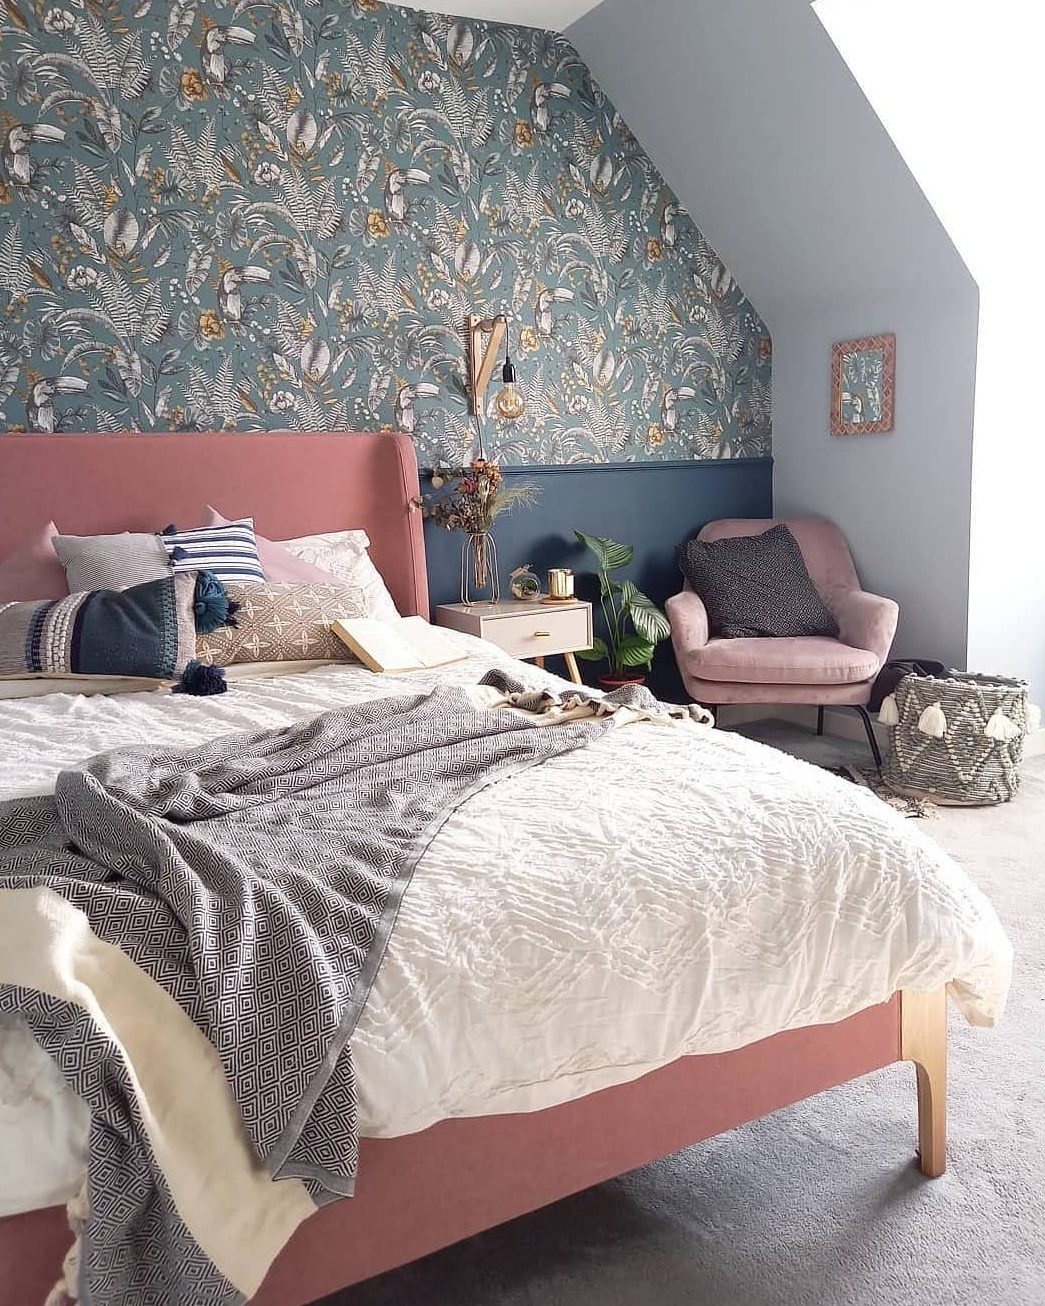 Image of the bed and mattress of @thehousewiththepinkbed